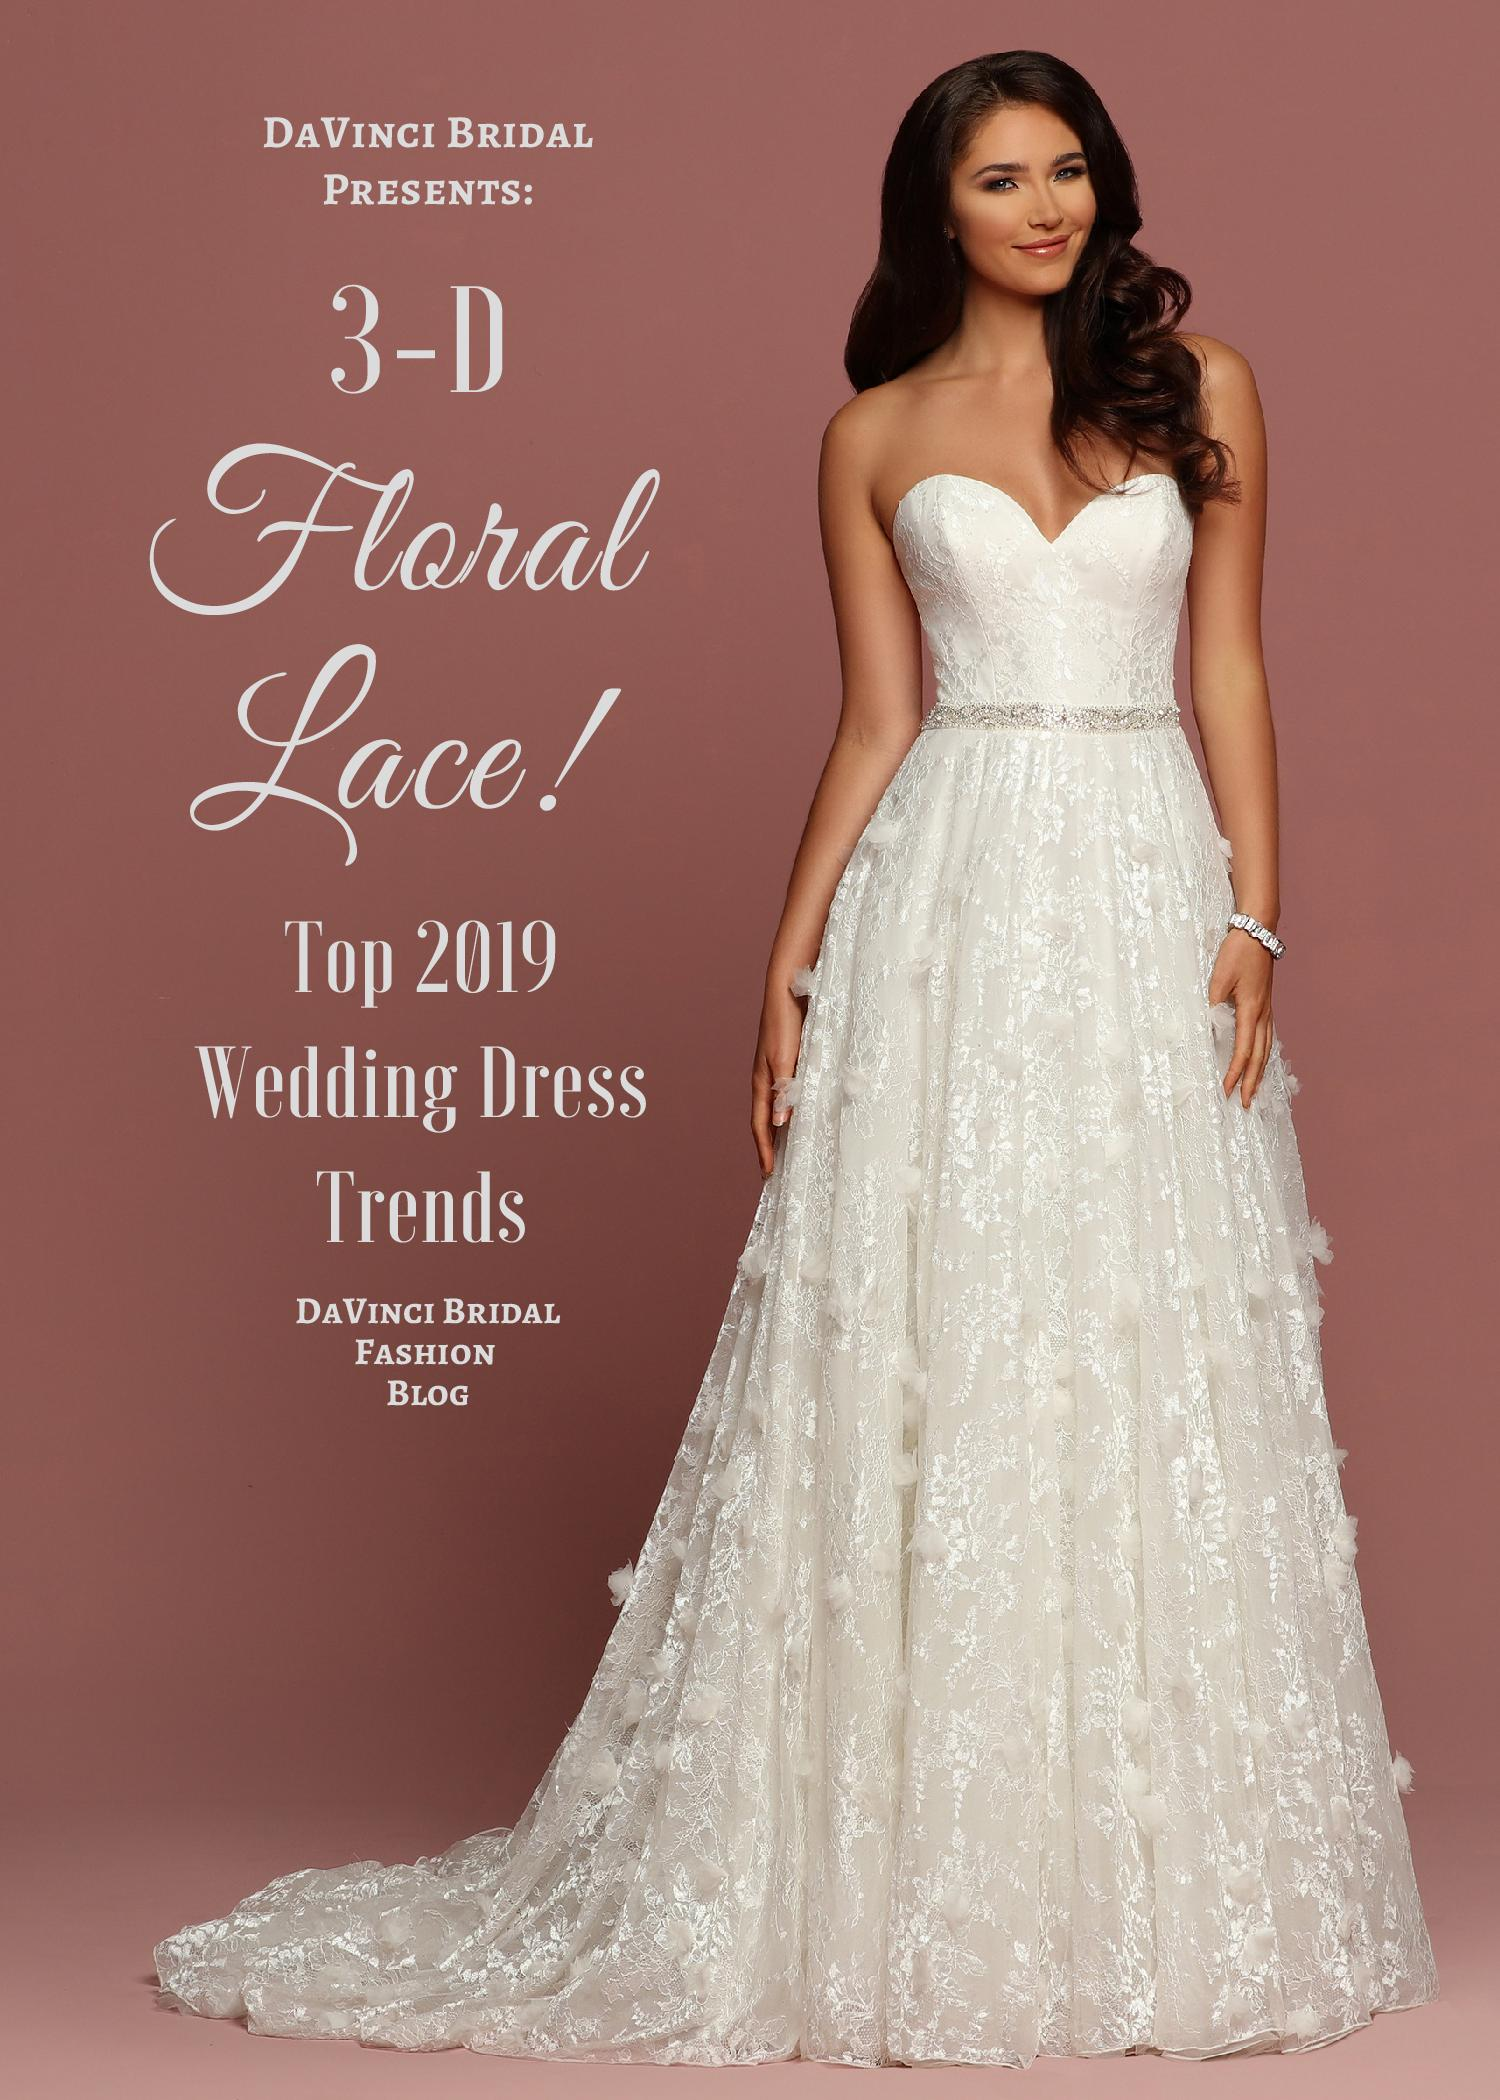 a0c92b29b3a68 Top Spring 2019 Wedding Dress Trends 3-D Floral Lace – DaVinci Bridal  Fashion Blog